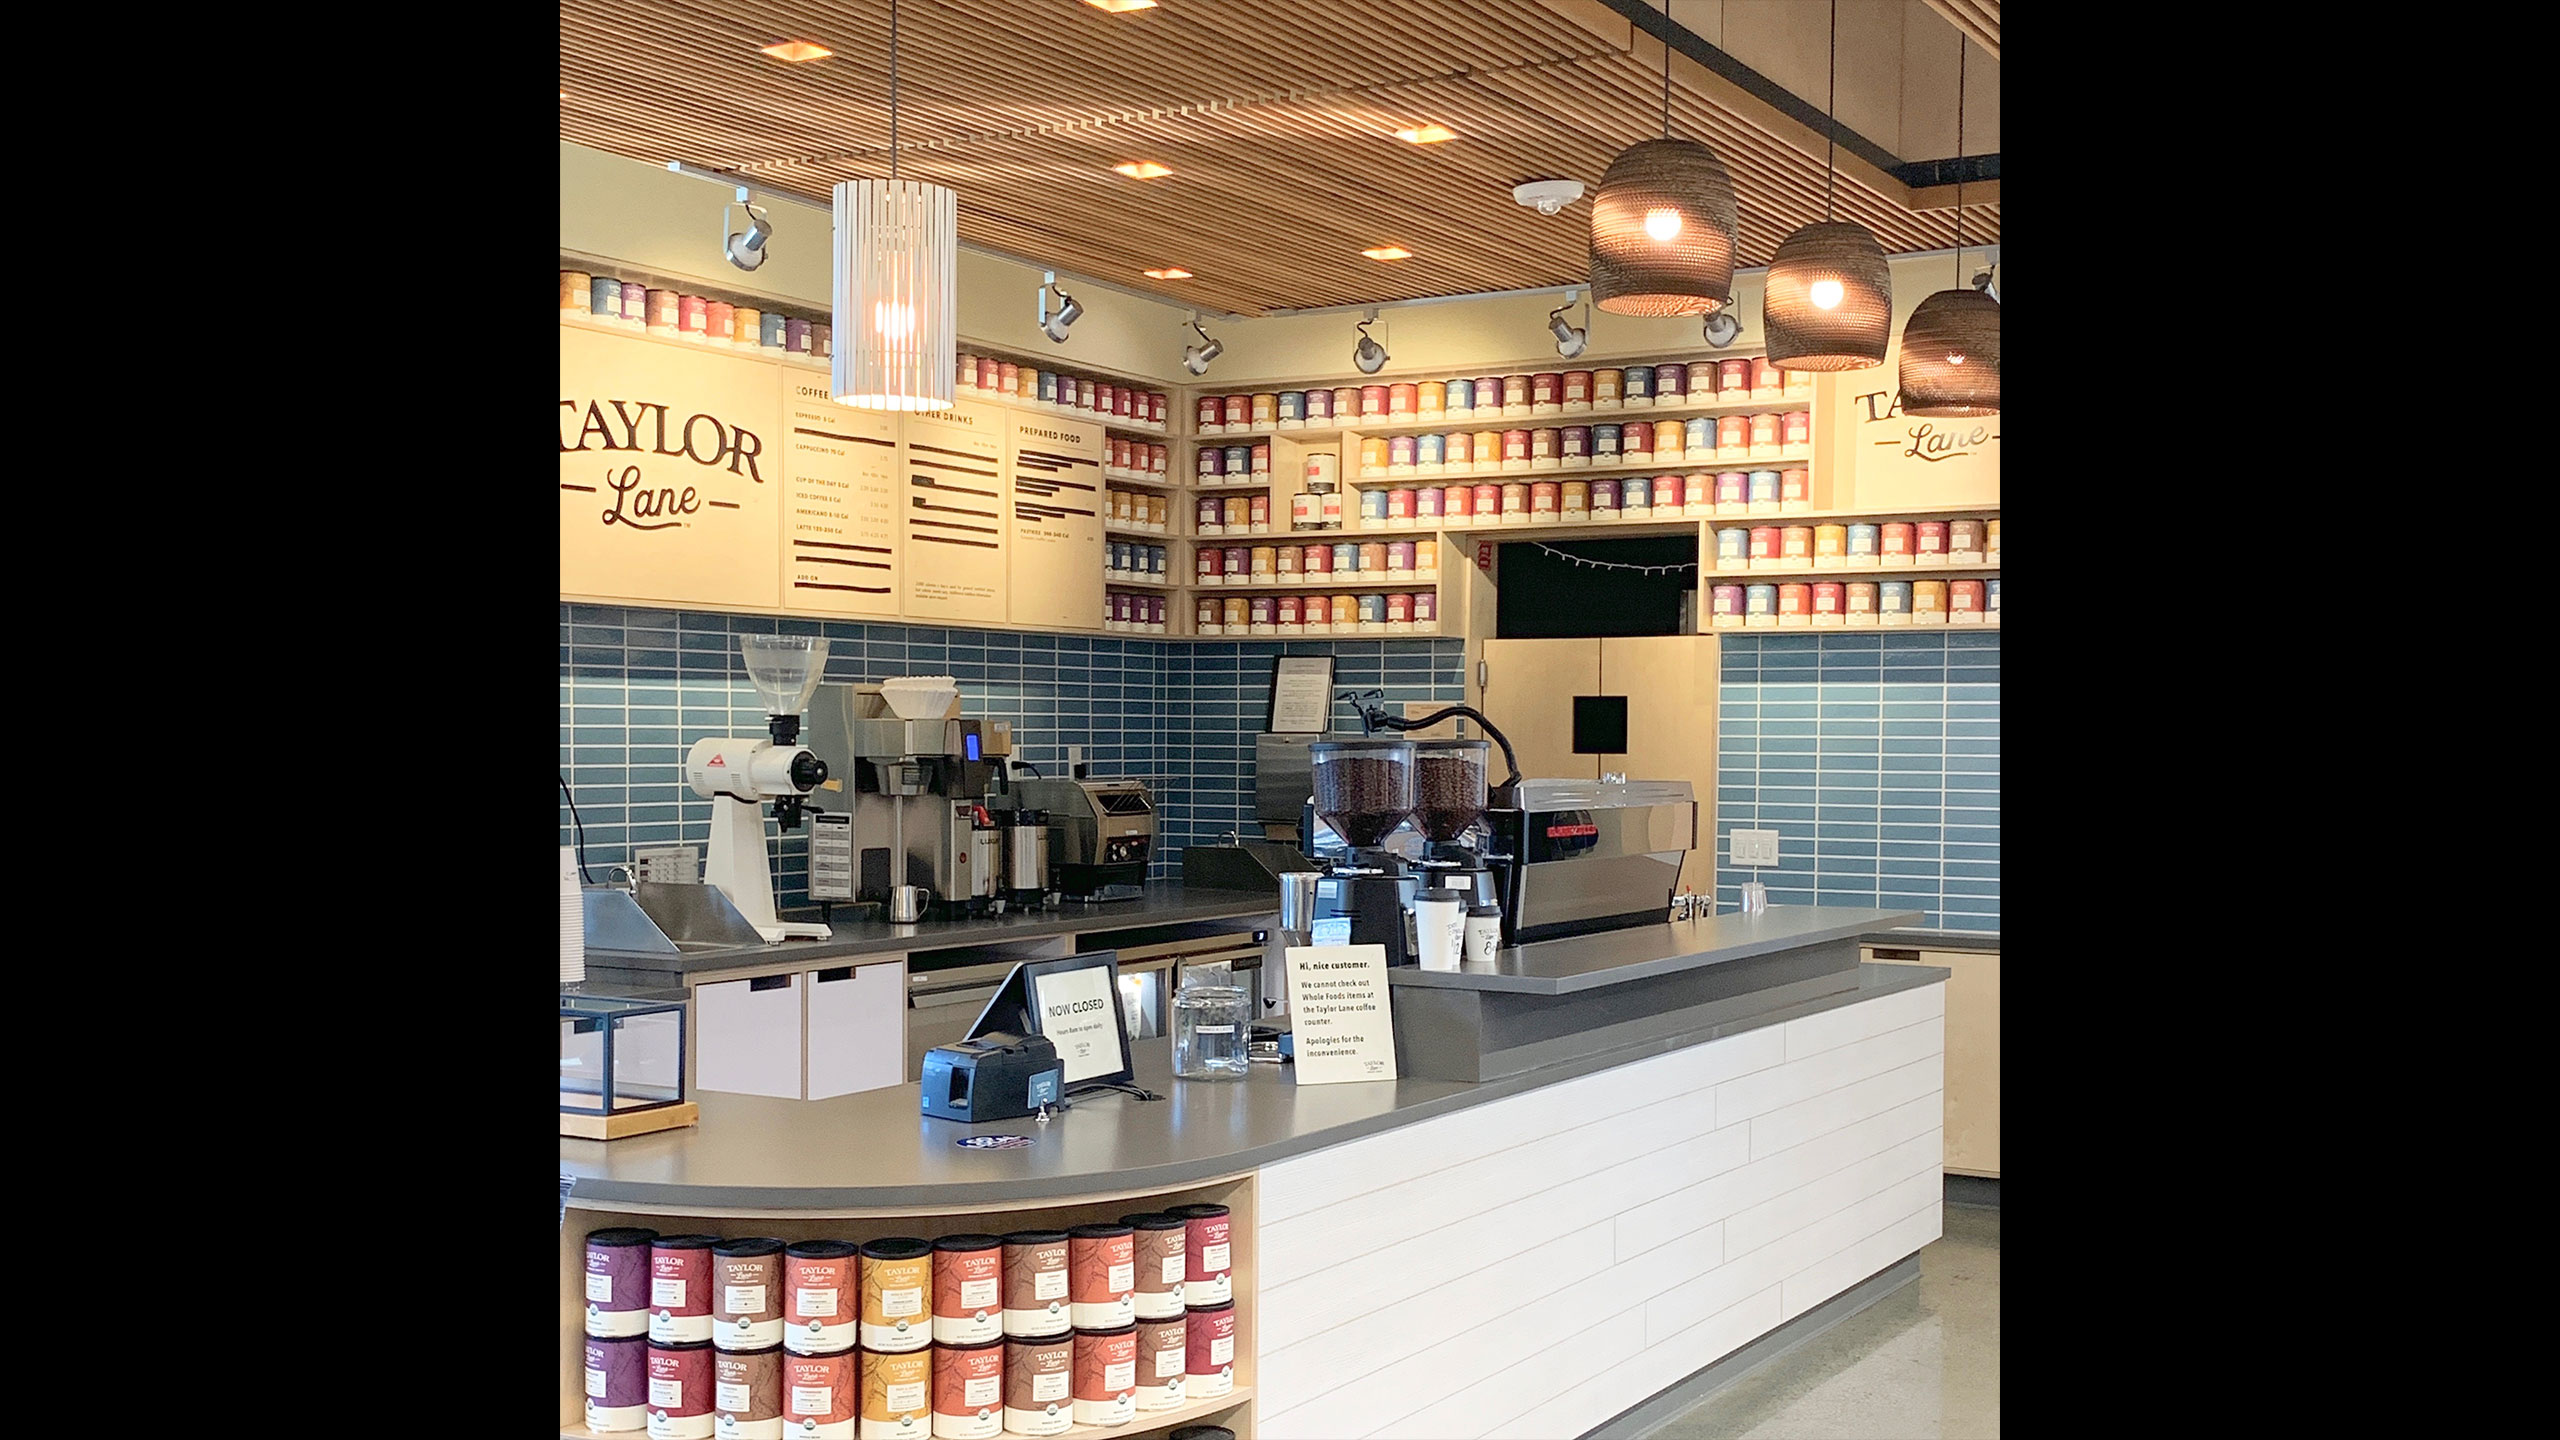 Coffee-Shop-Design-Taylor-Lane-3-Counter-with-dropped-armstrong-wood-ceiling